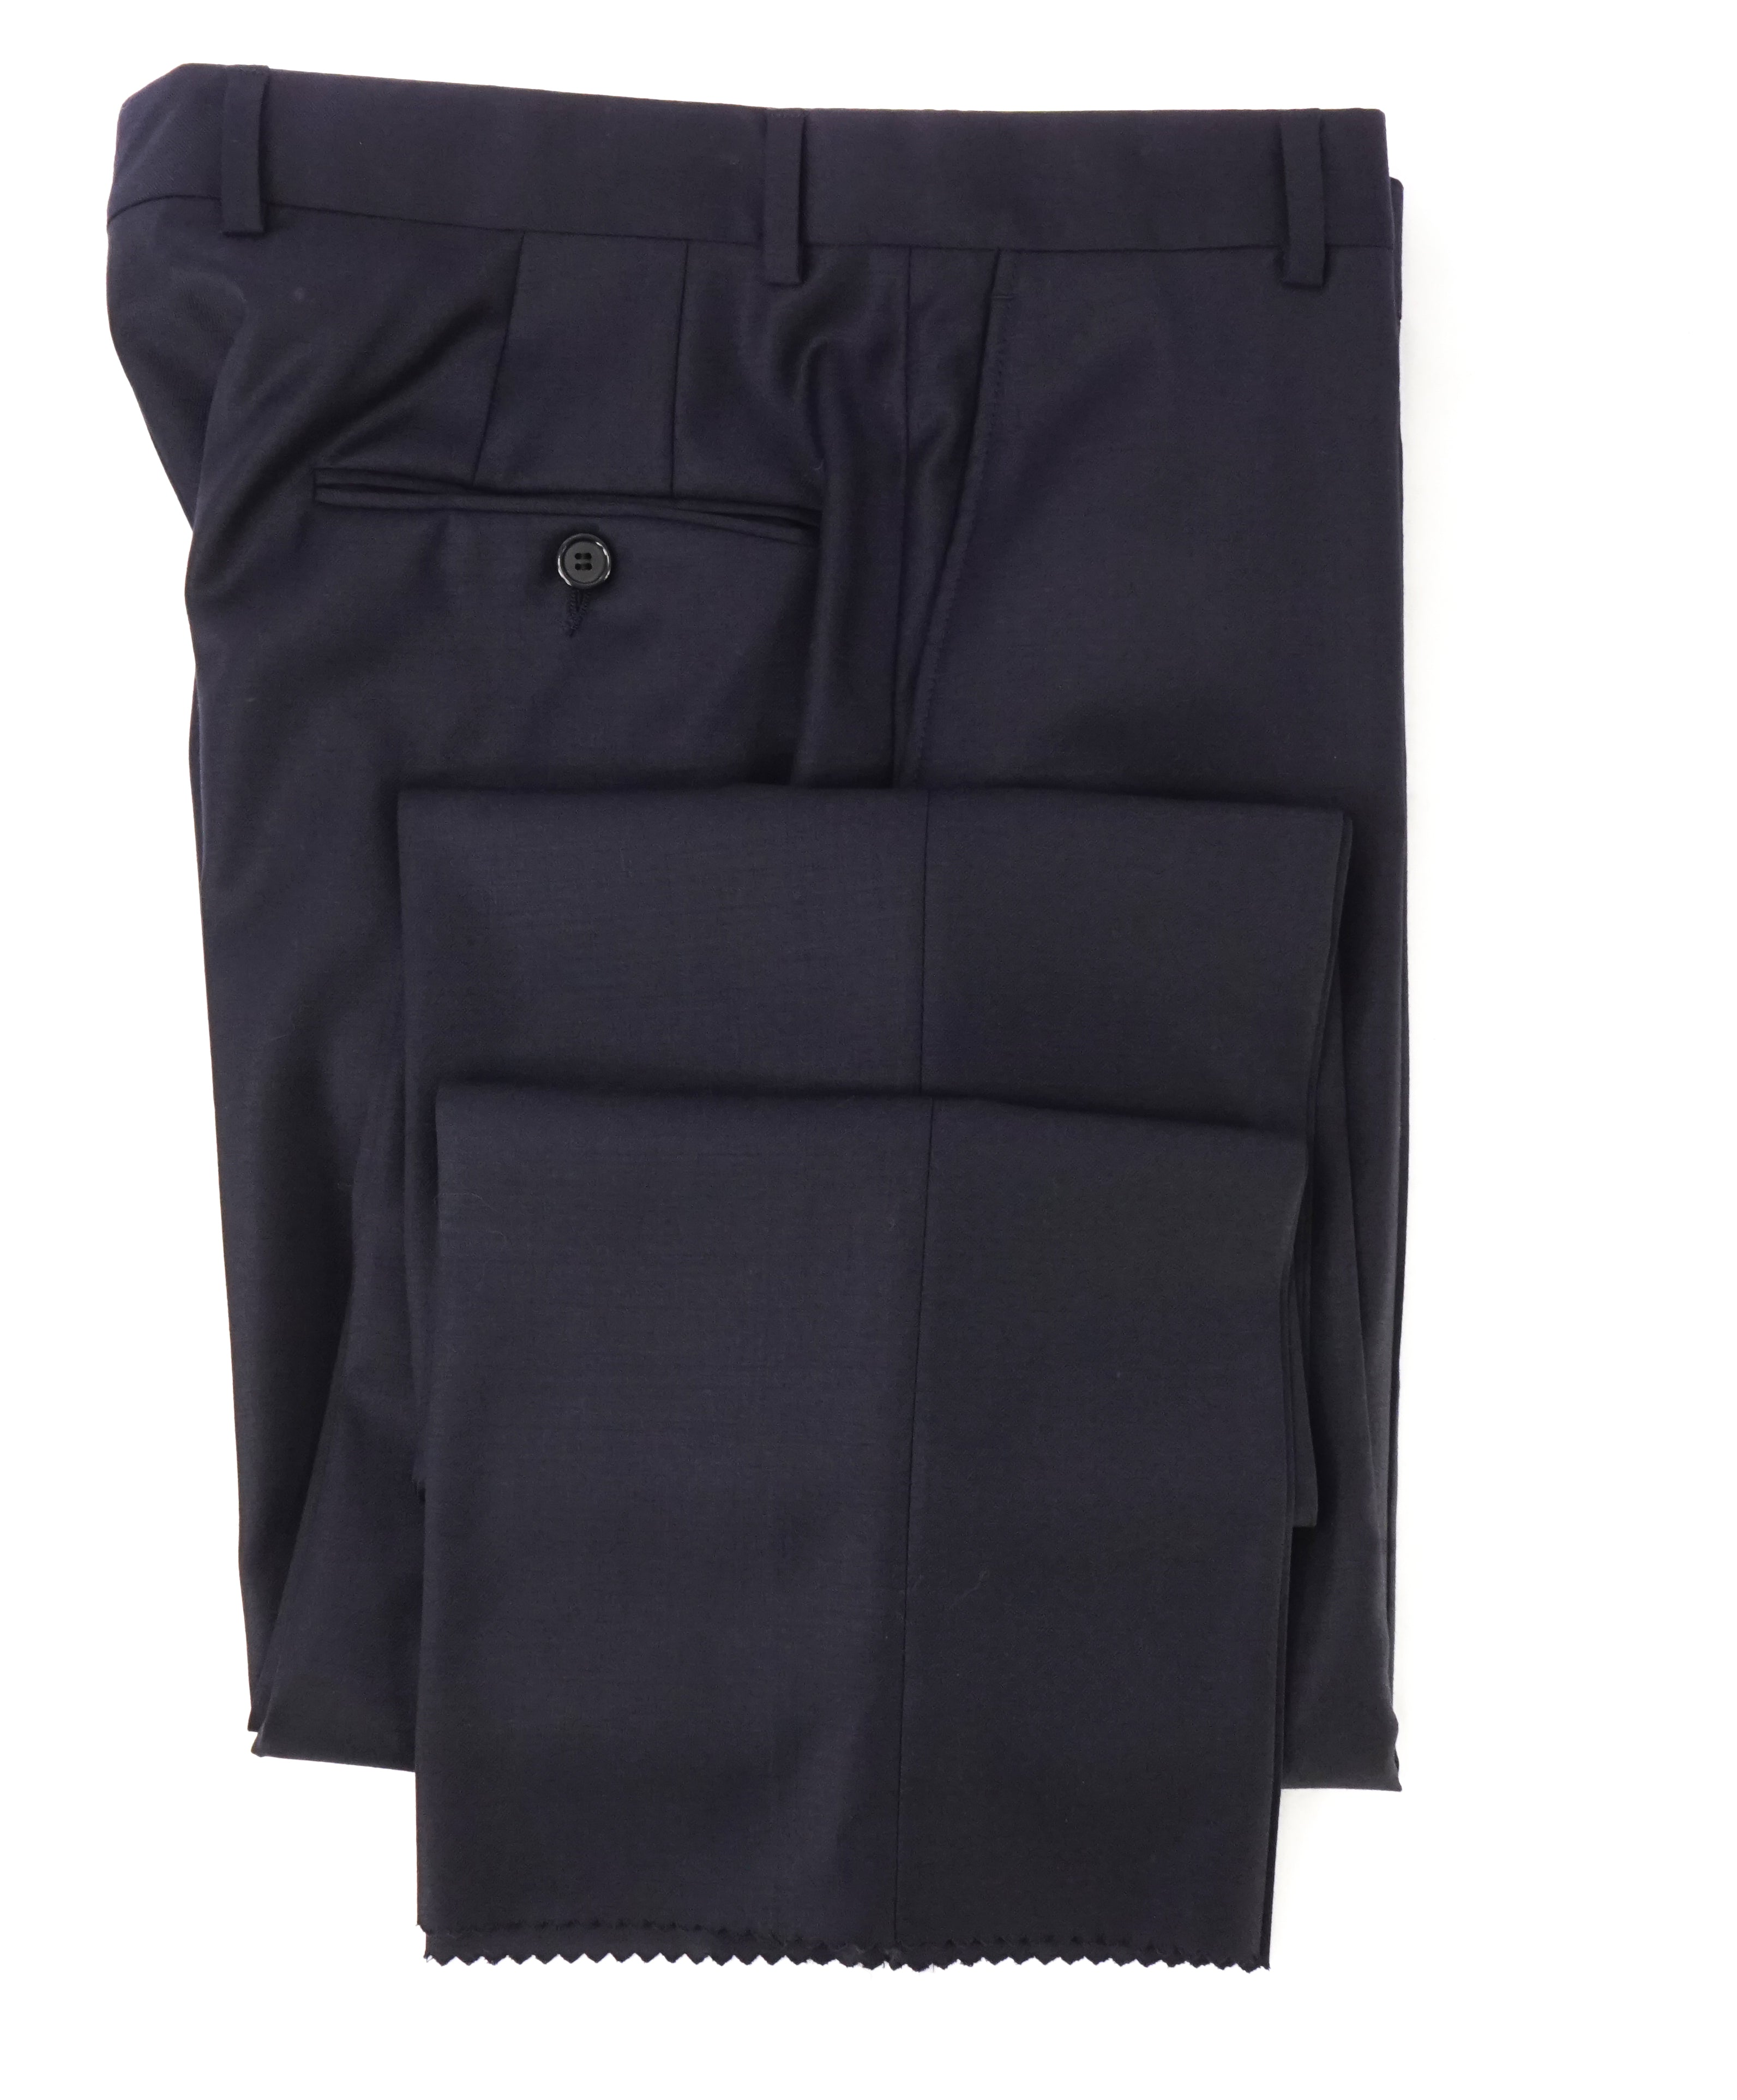 HICKEY FREEMAN - Solid Navy Closet Staple Wool Flat Front Dress Pants - 36W